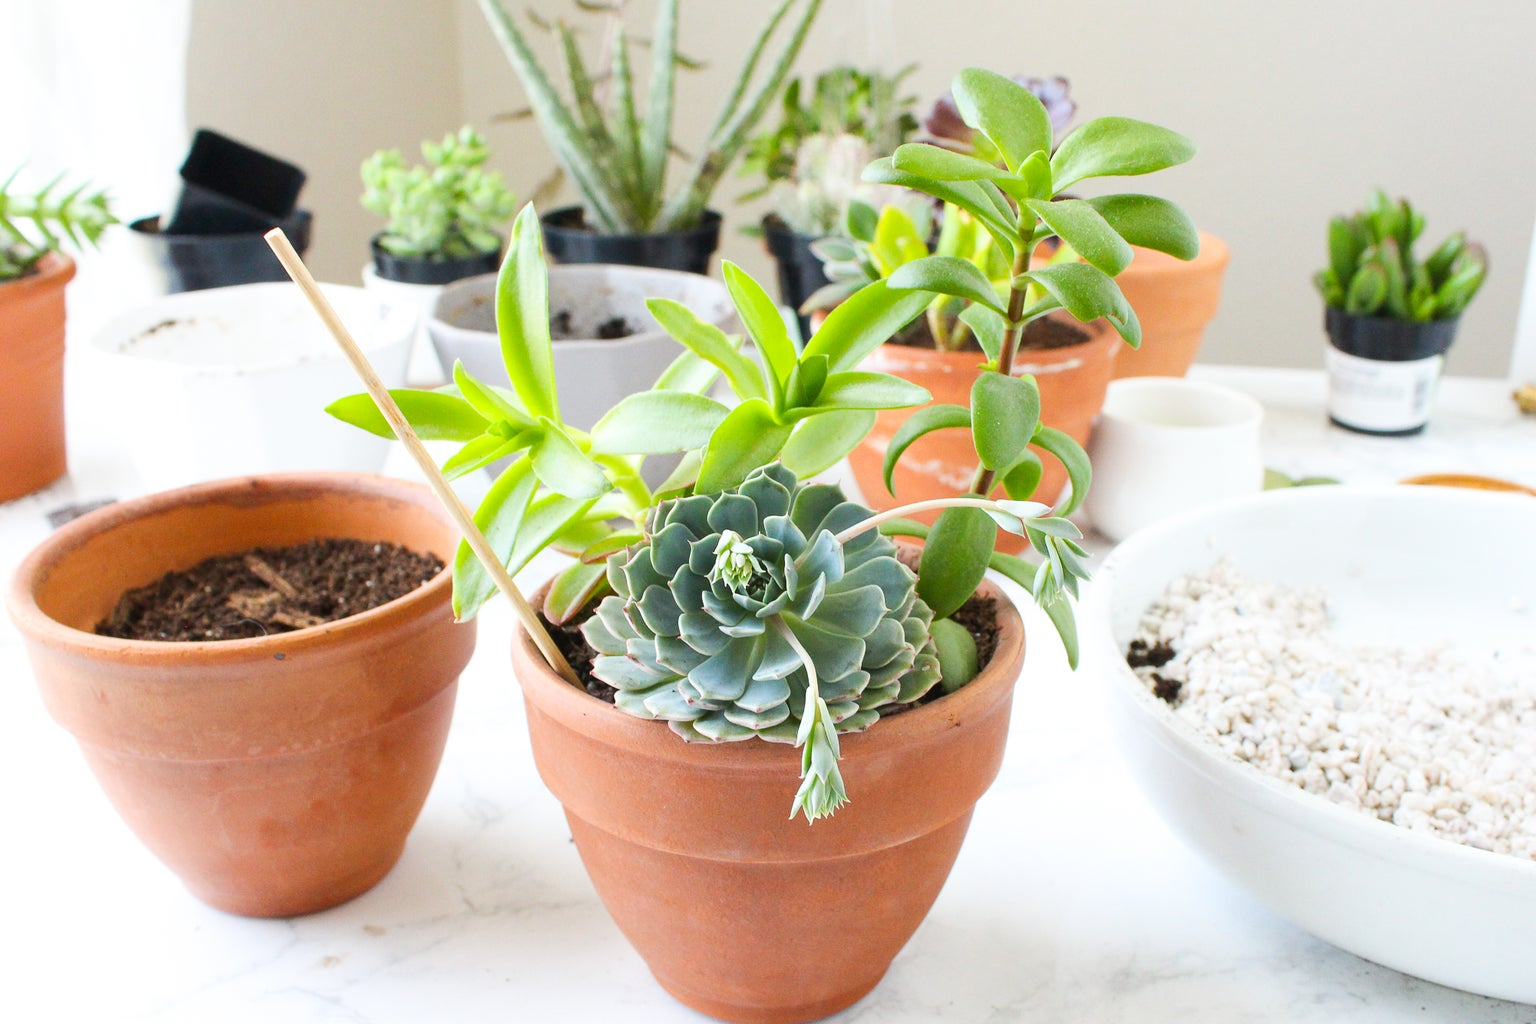 How to Remove Plants From a Ceramic or Terra Cotta Pot